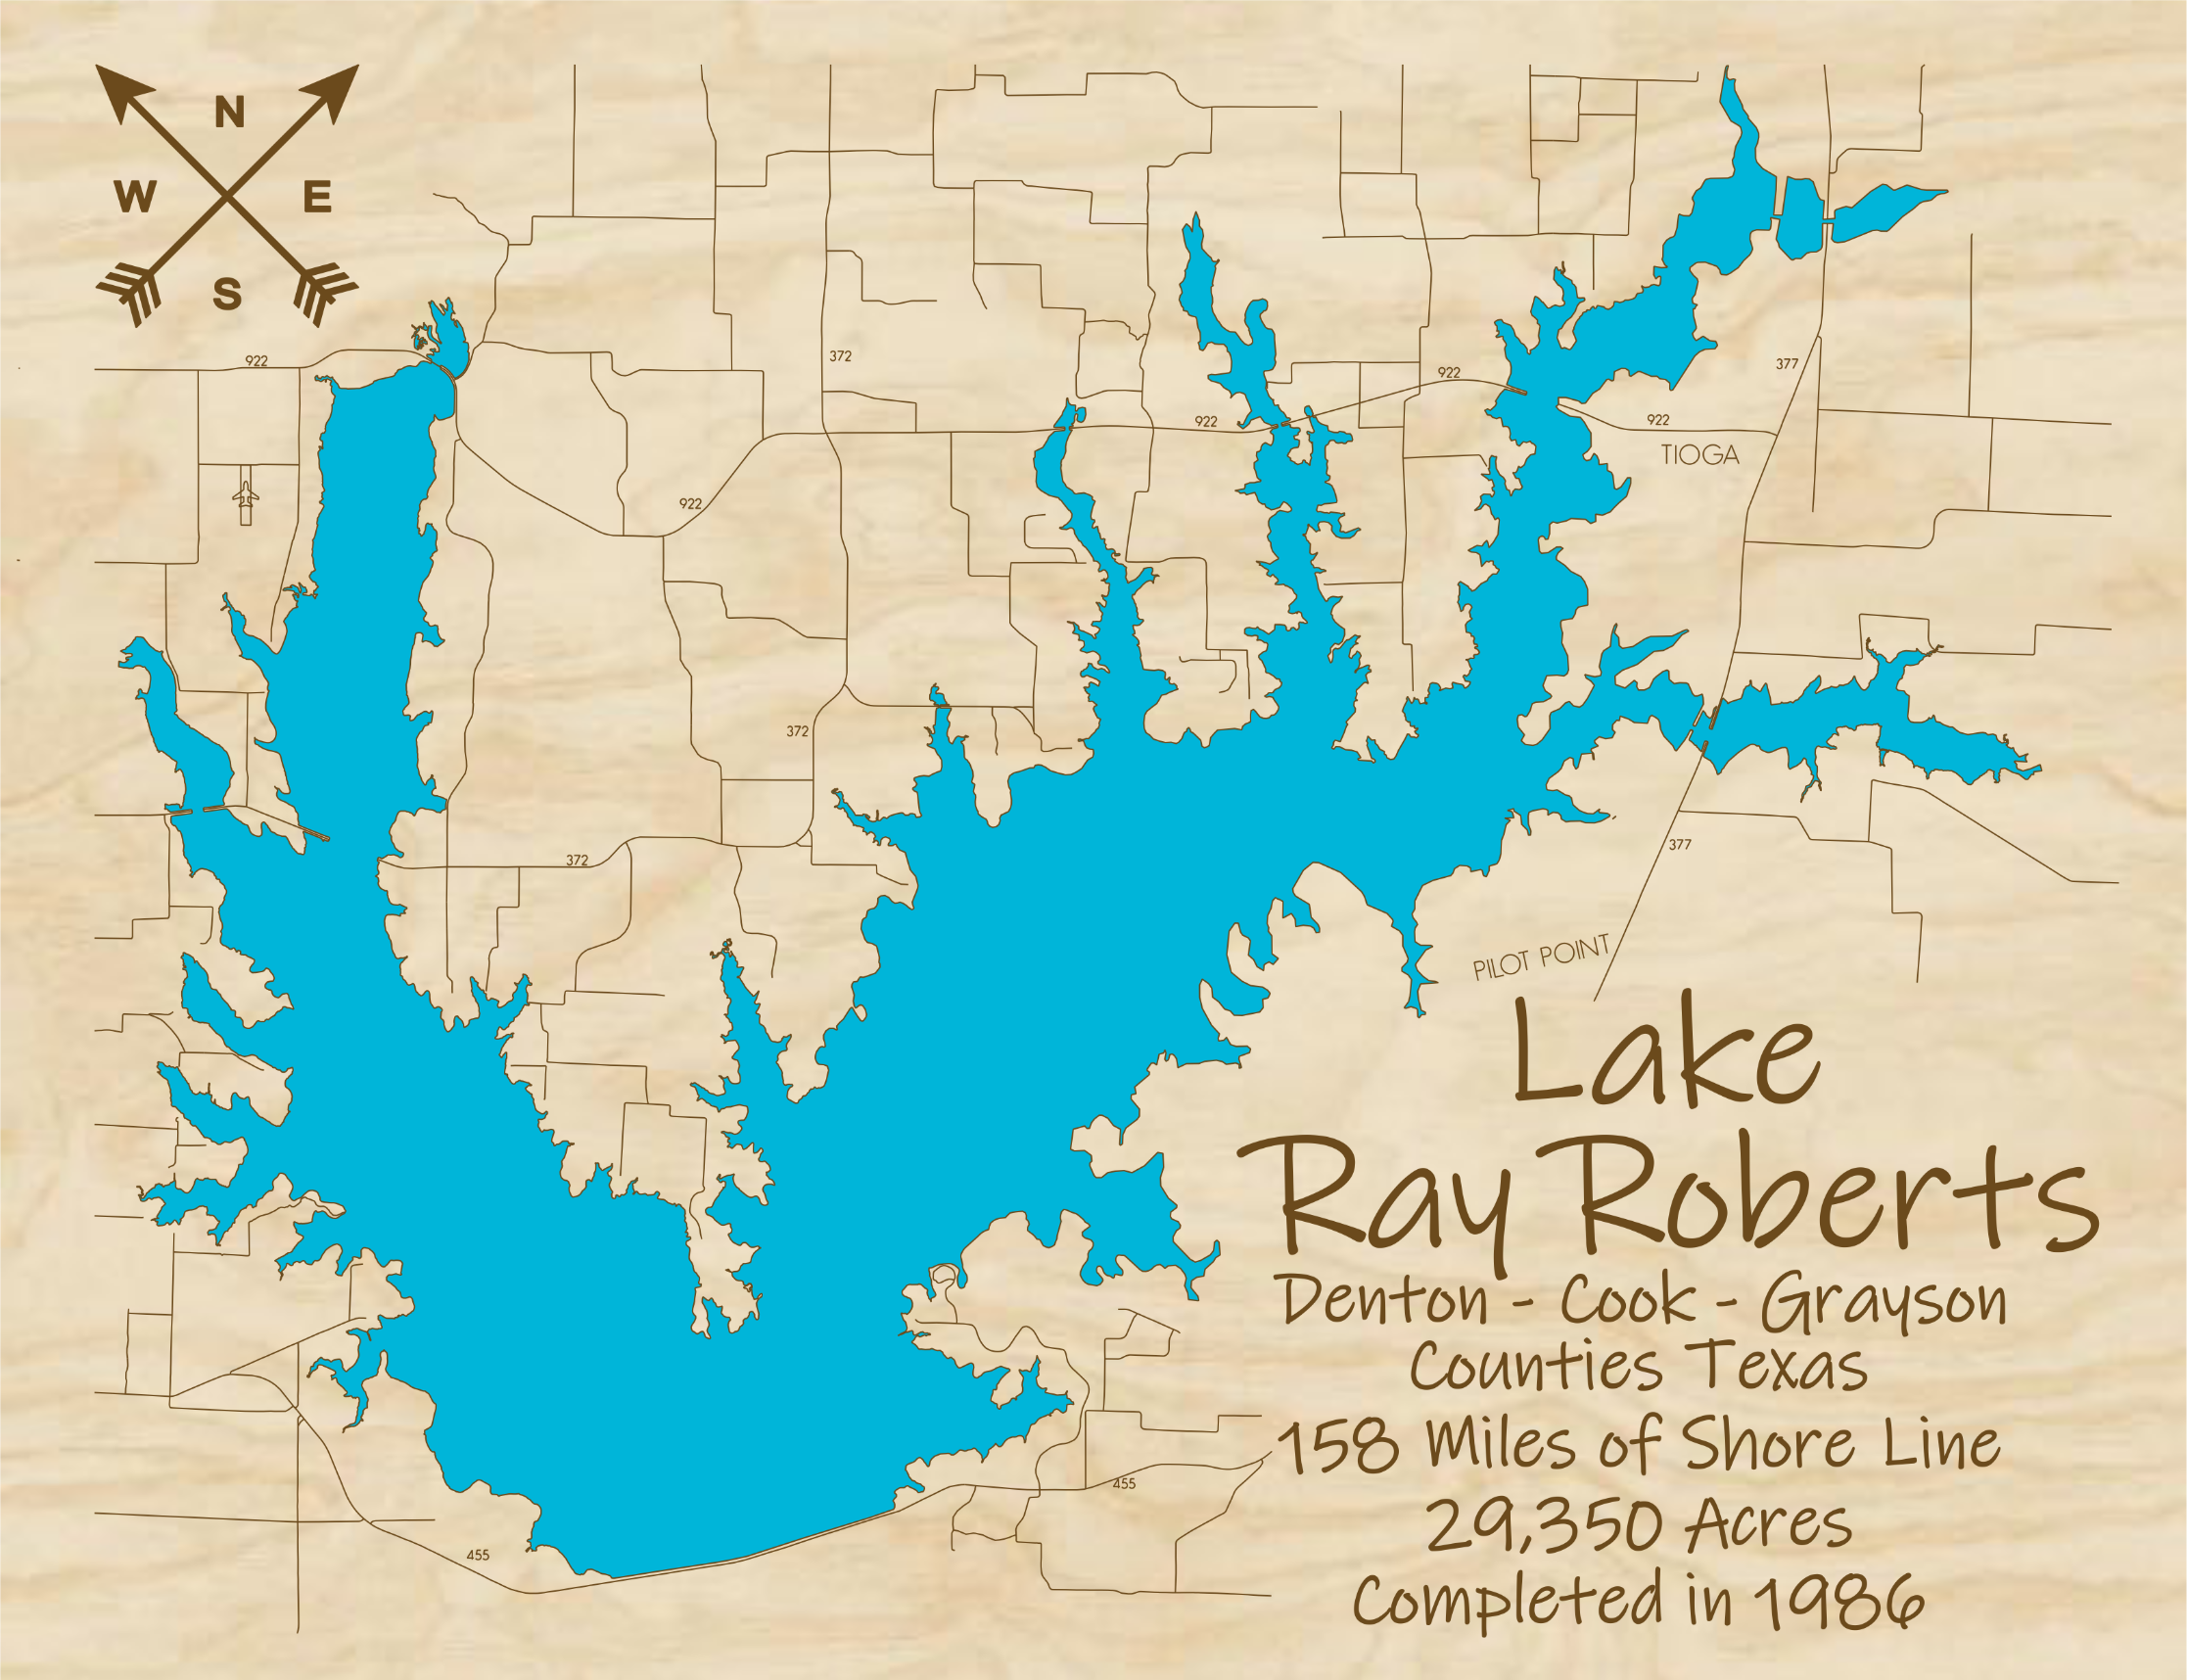 Lake Ray Roberts Multi-layered Wood Lake Map